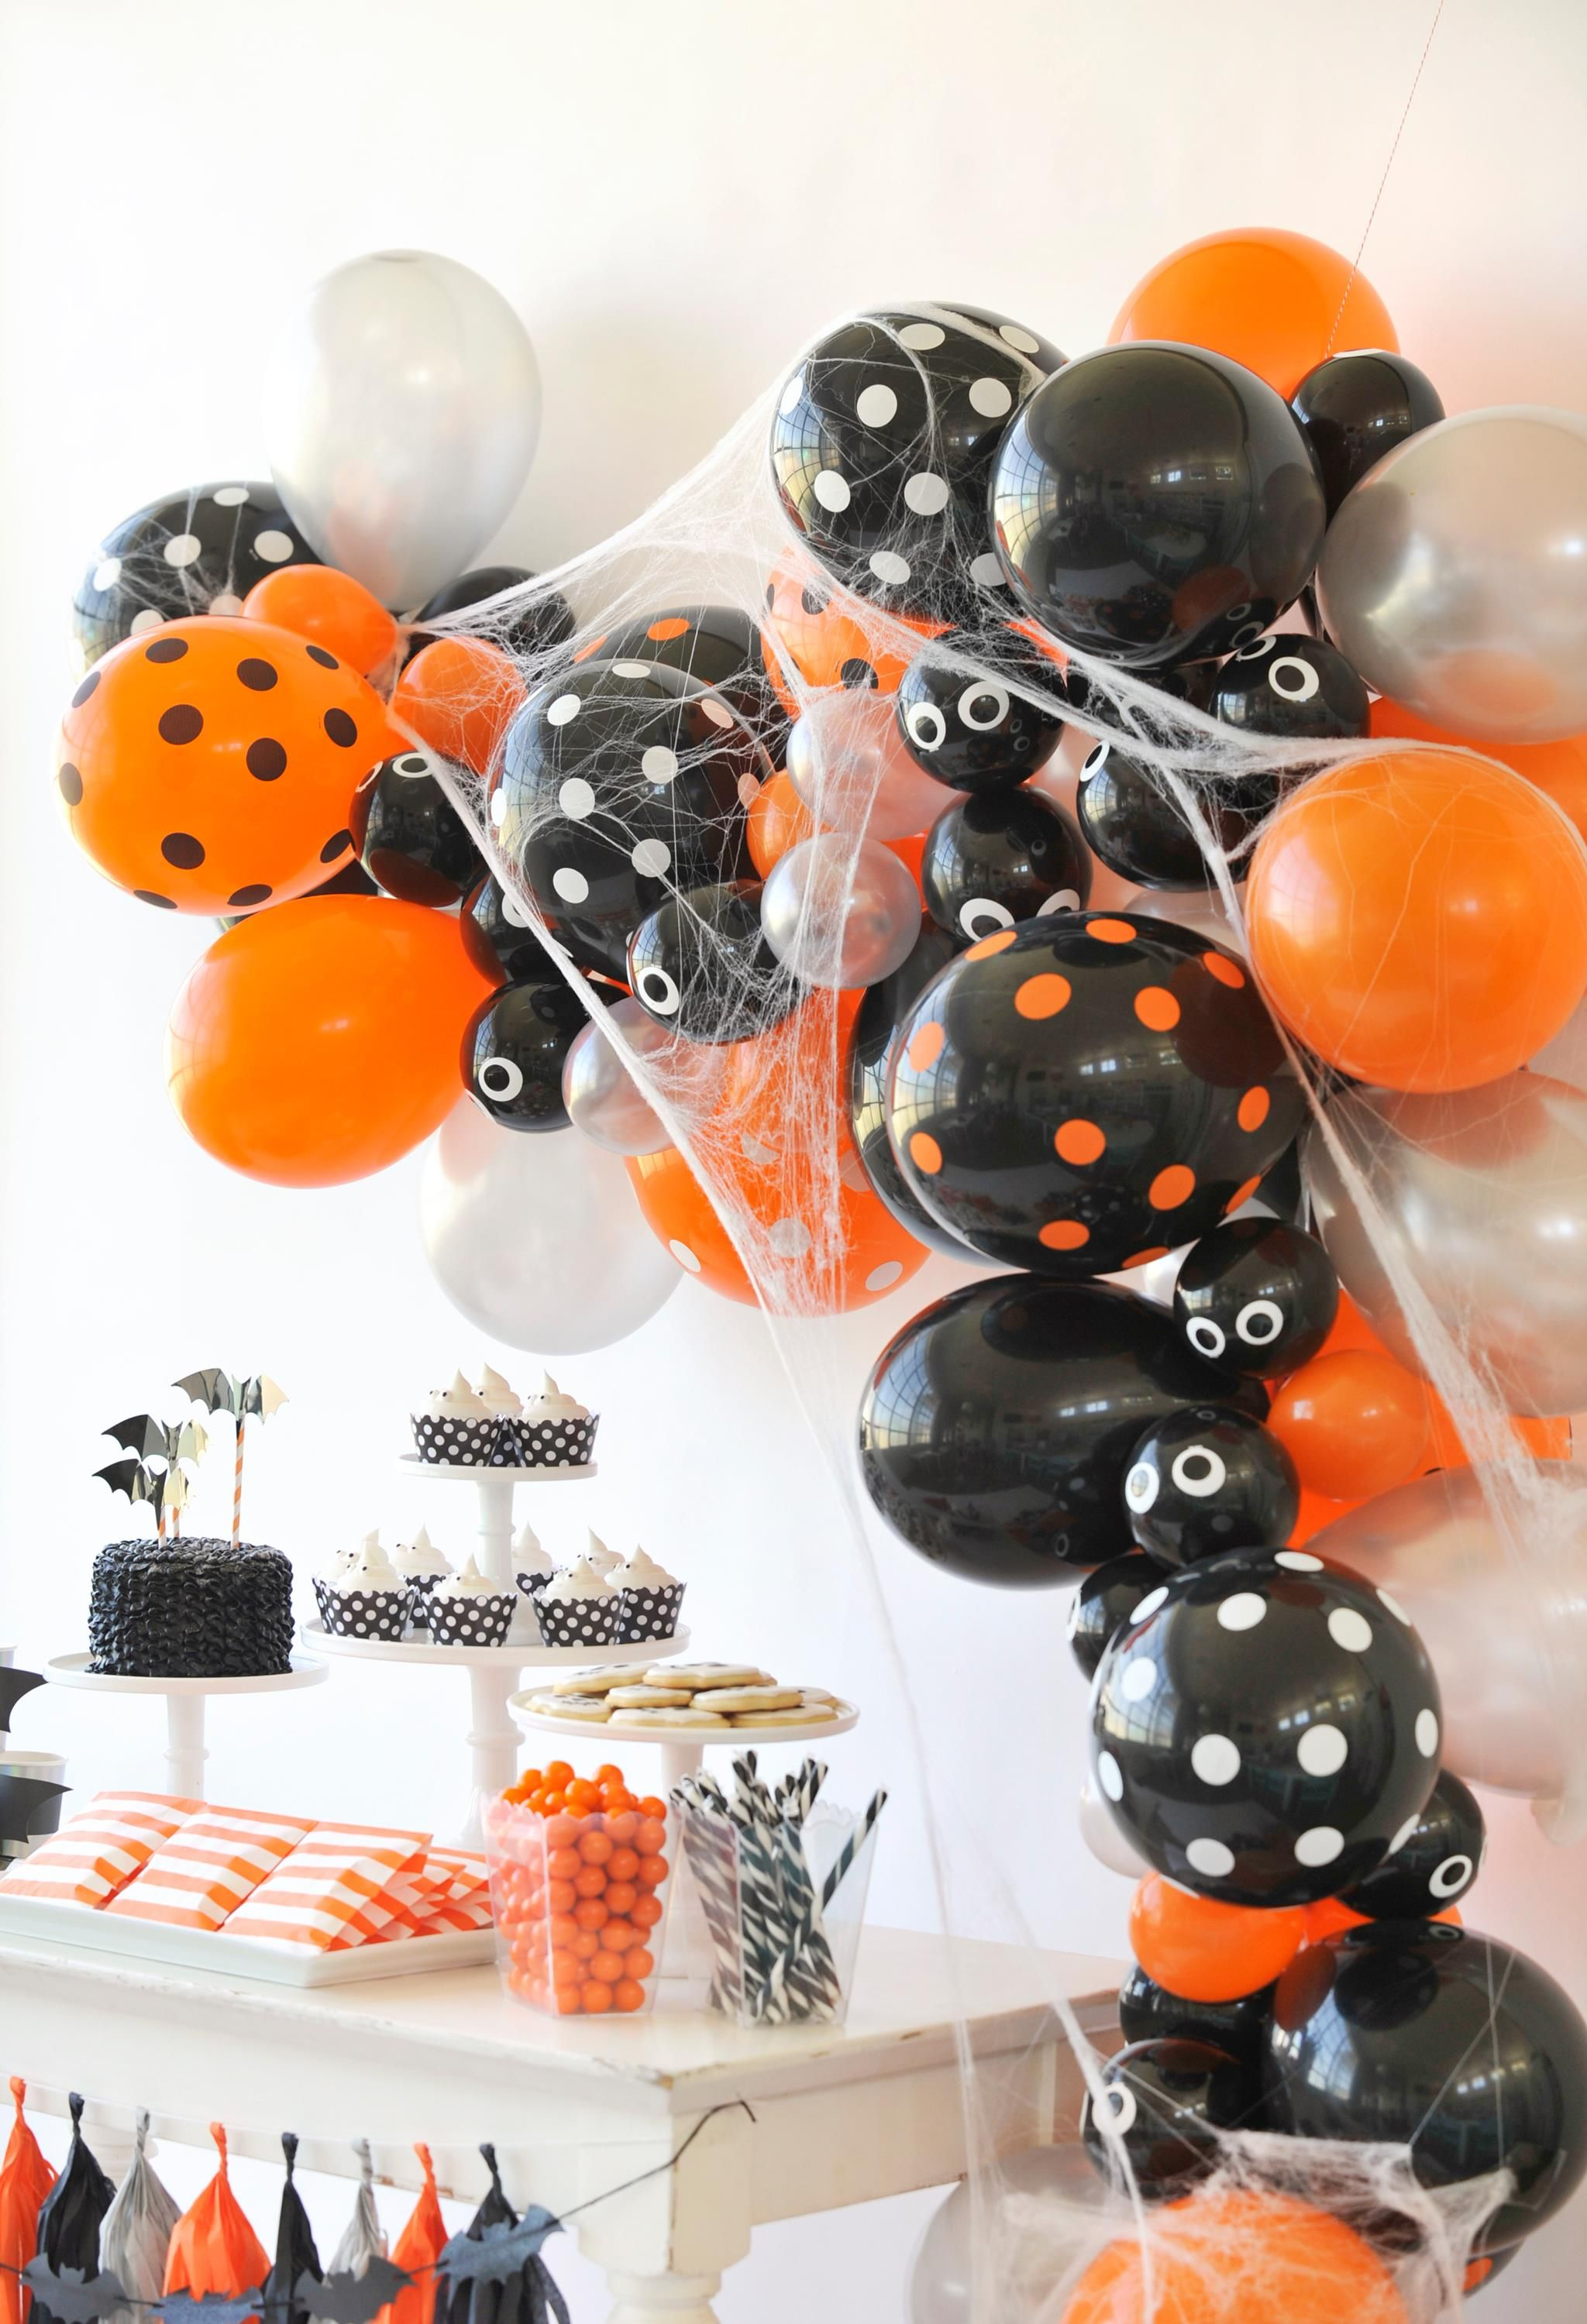 Pin by Mimi Stevenson on Party Ideas - Children Pinterest - Halloween Decorations For Kids